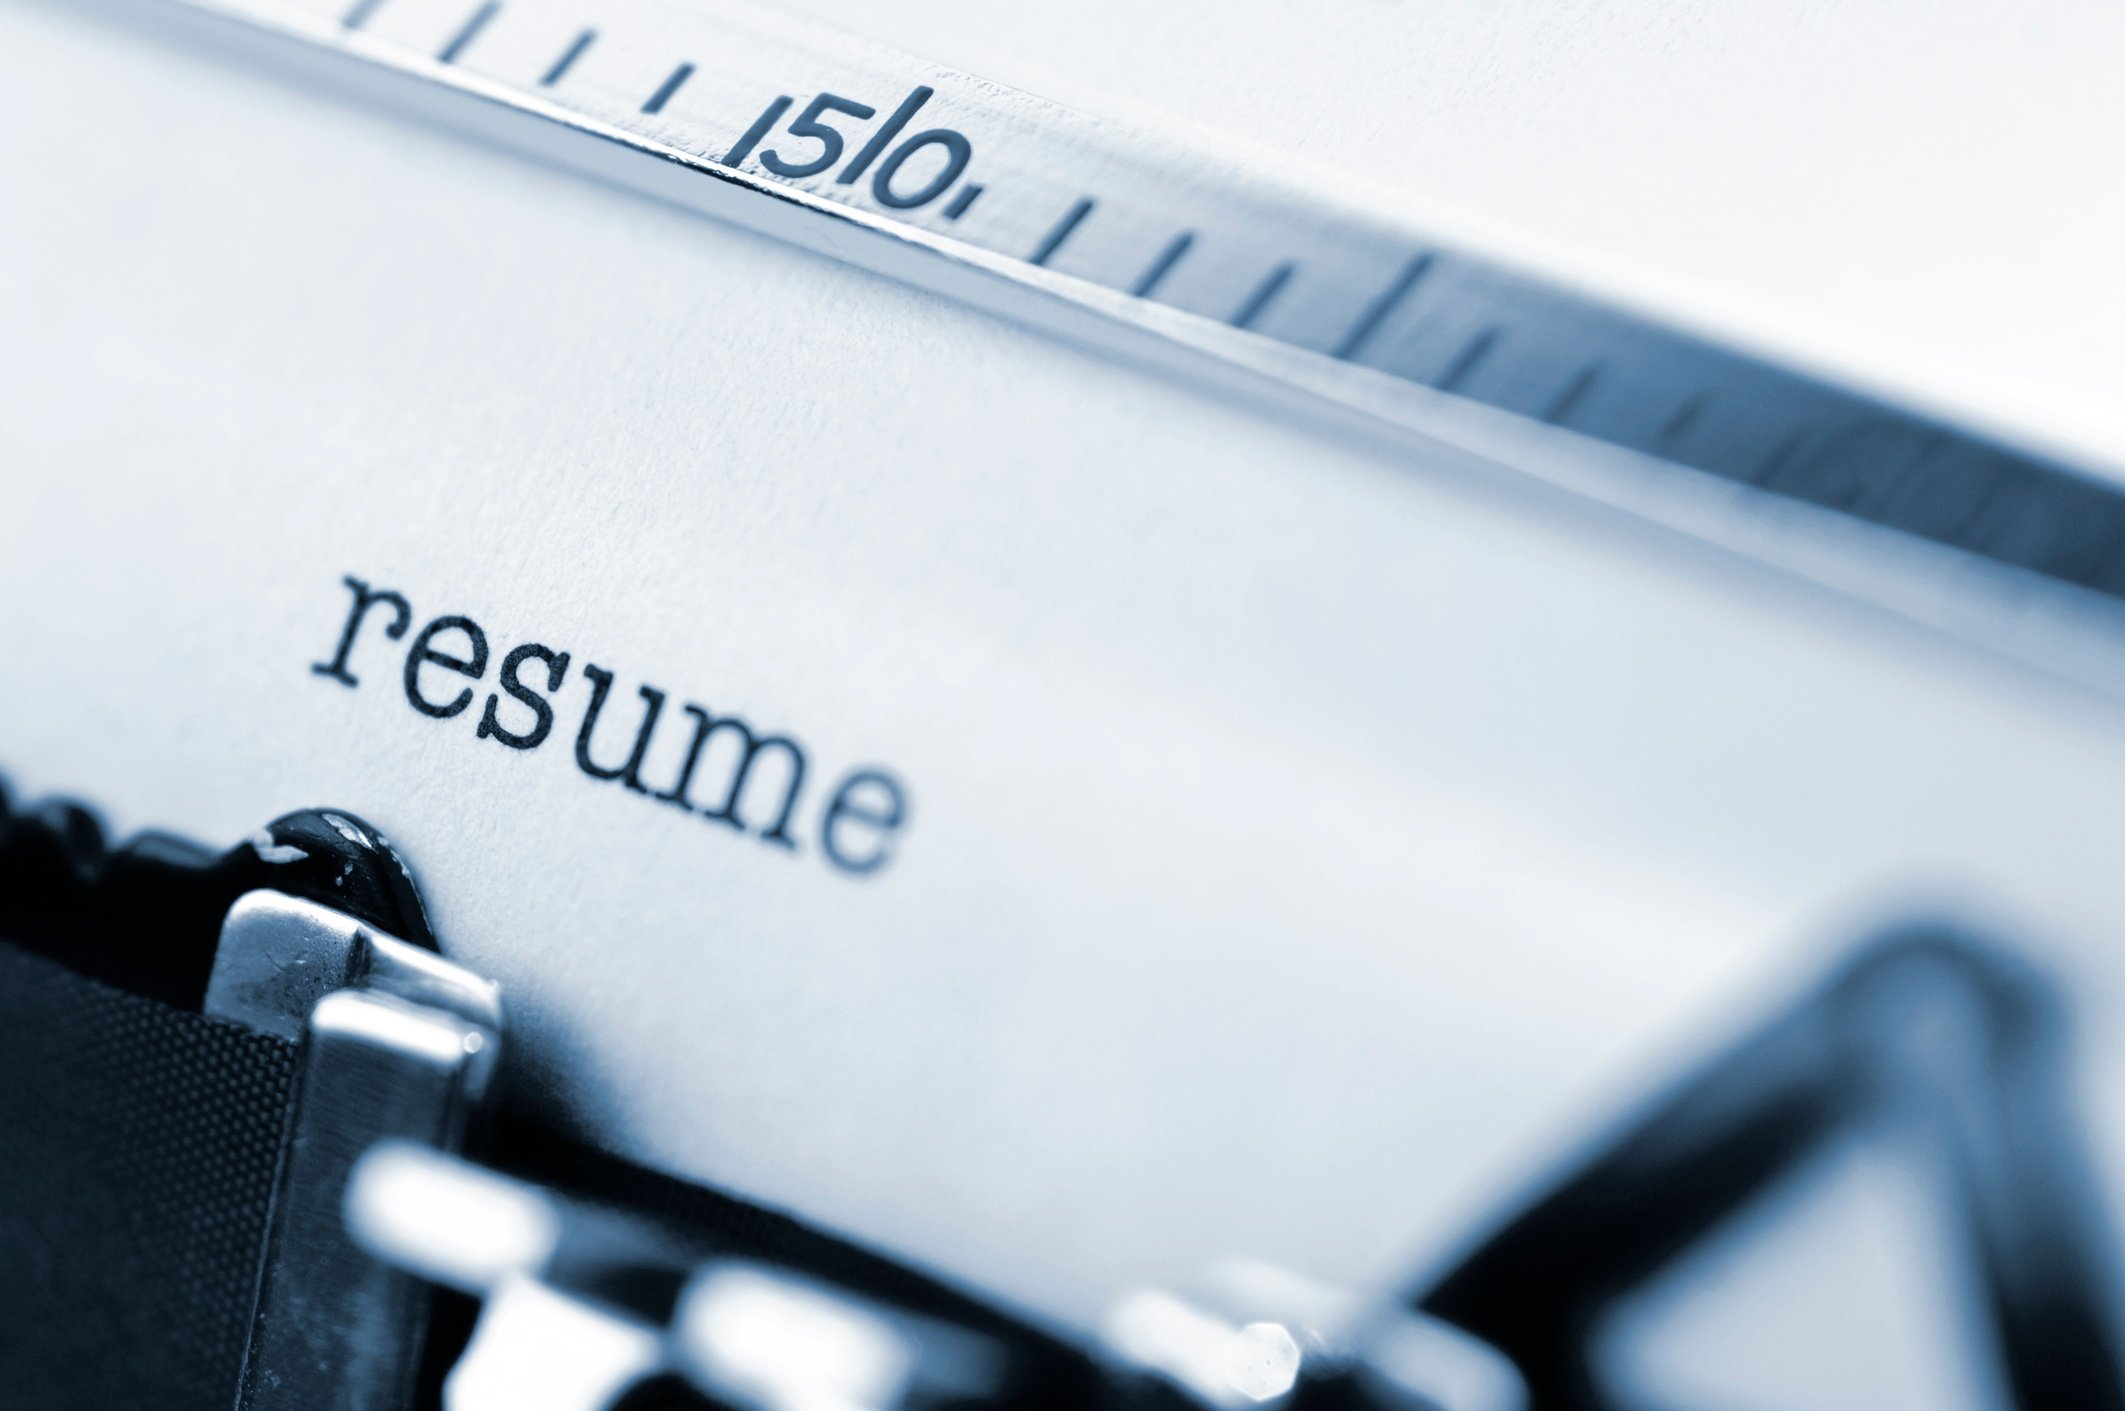 changing careers 7 resume writing tips to stand out from the pack